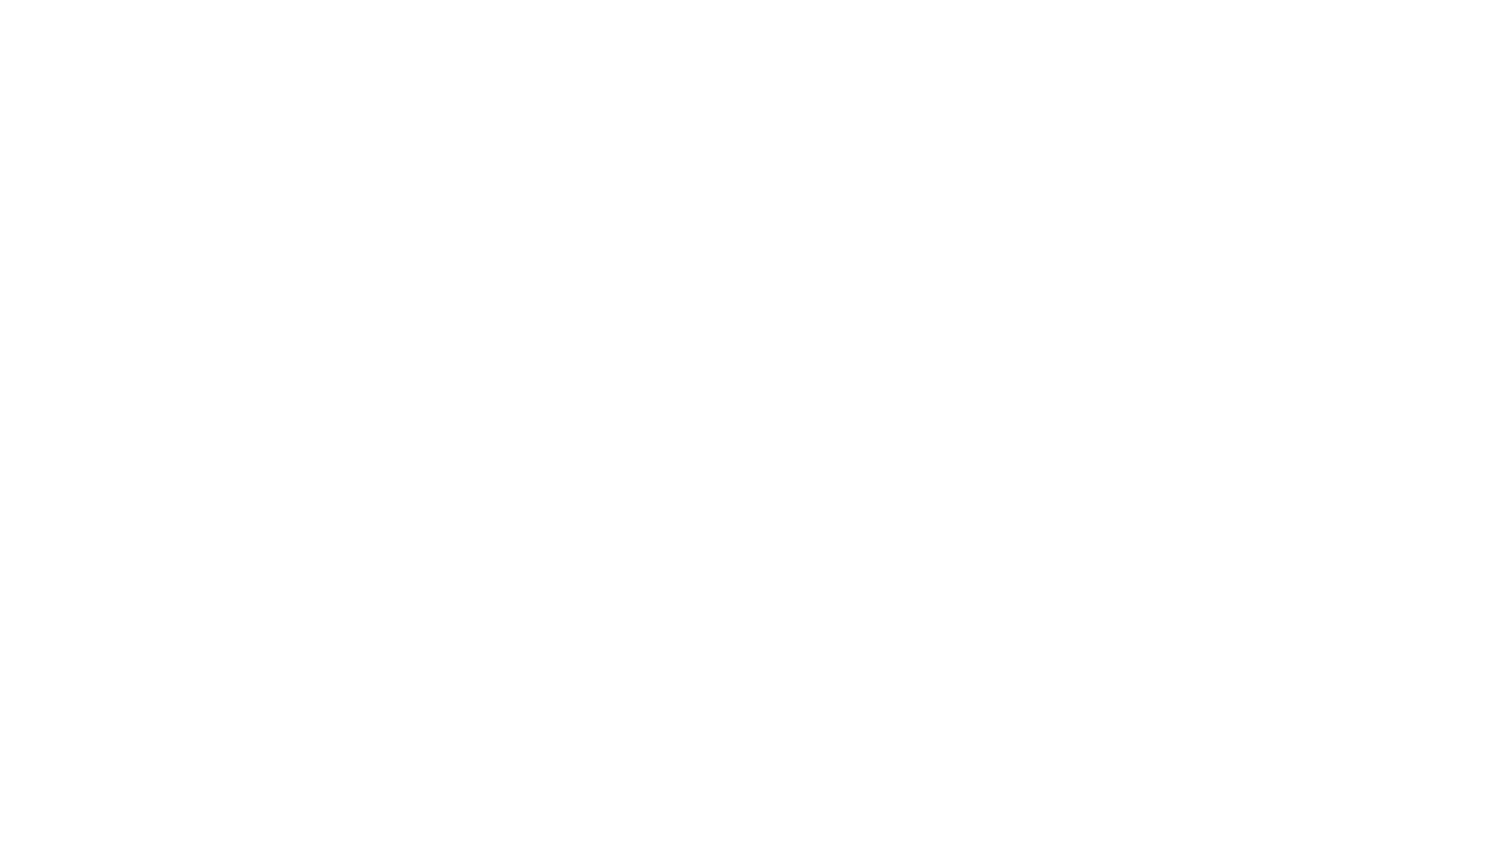 Cultural Peace Agreement